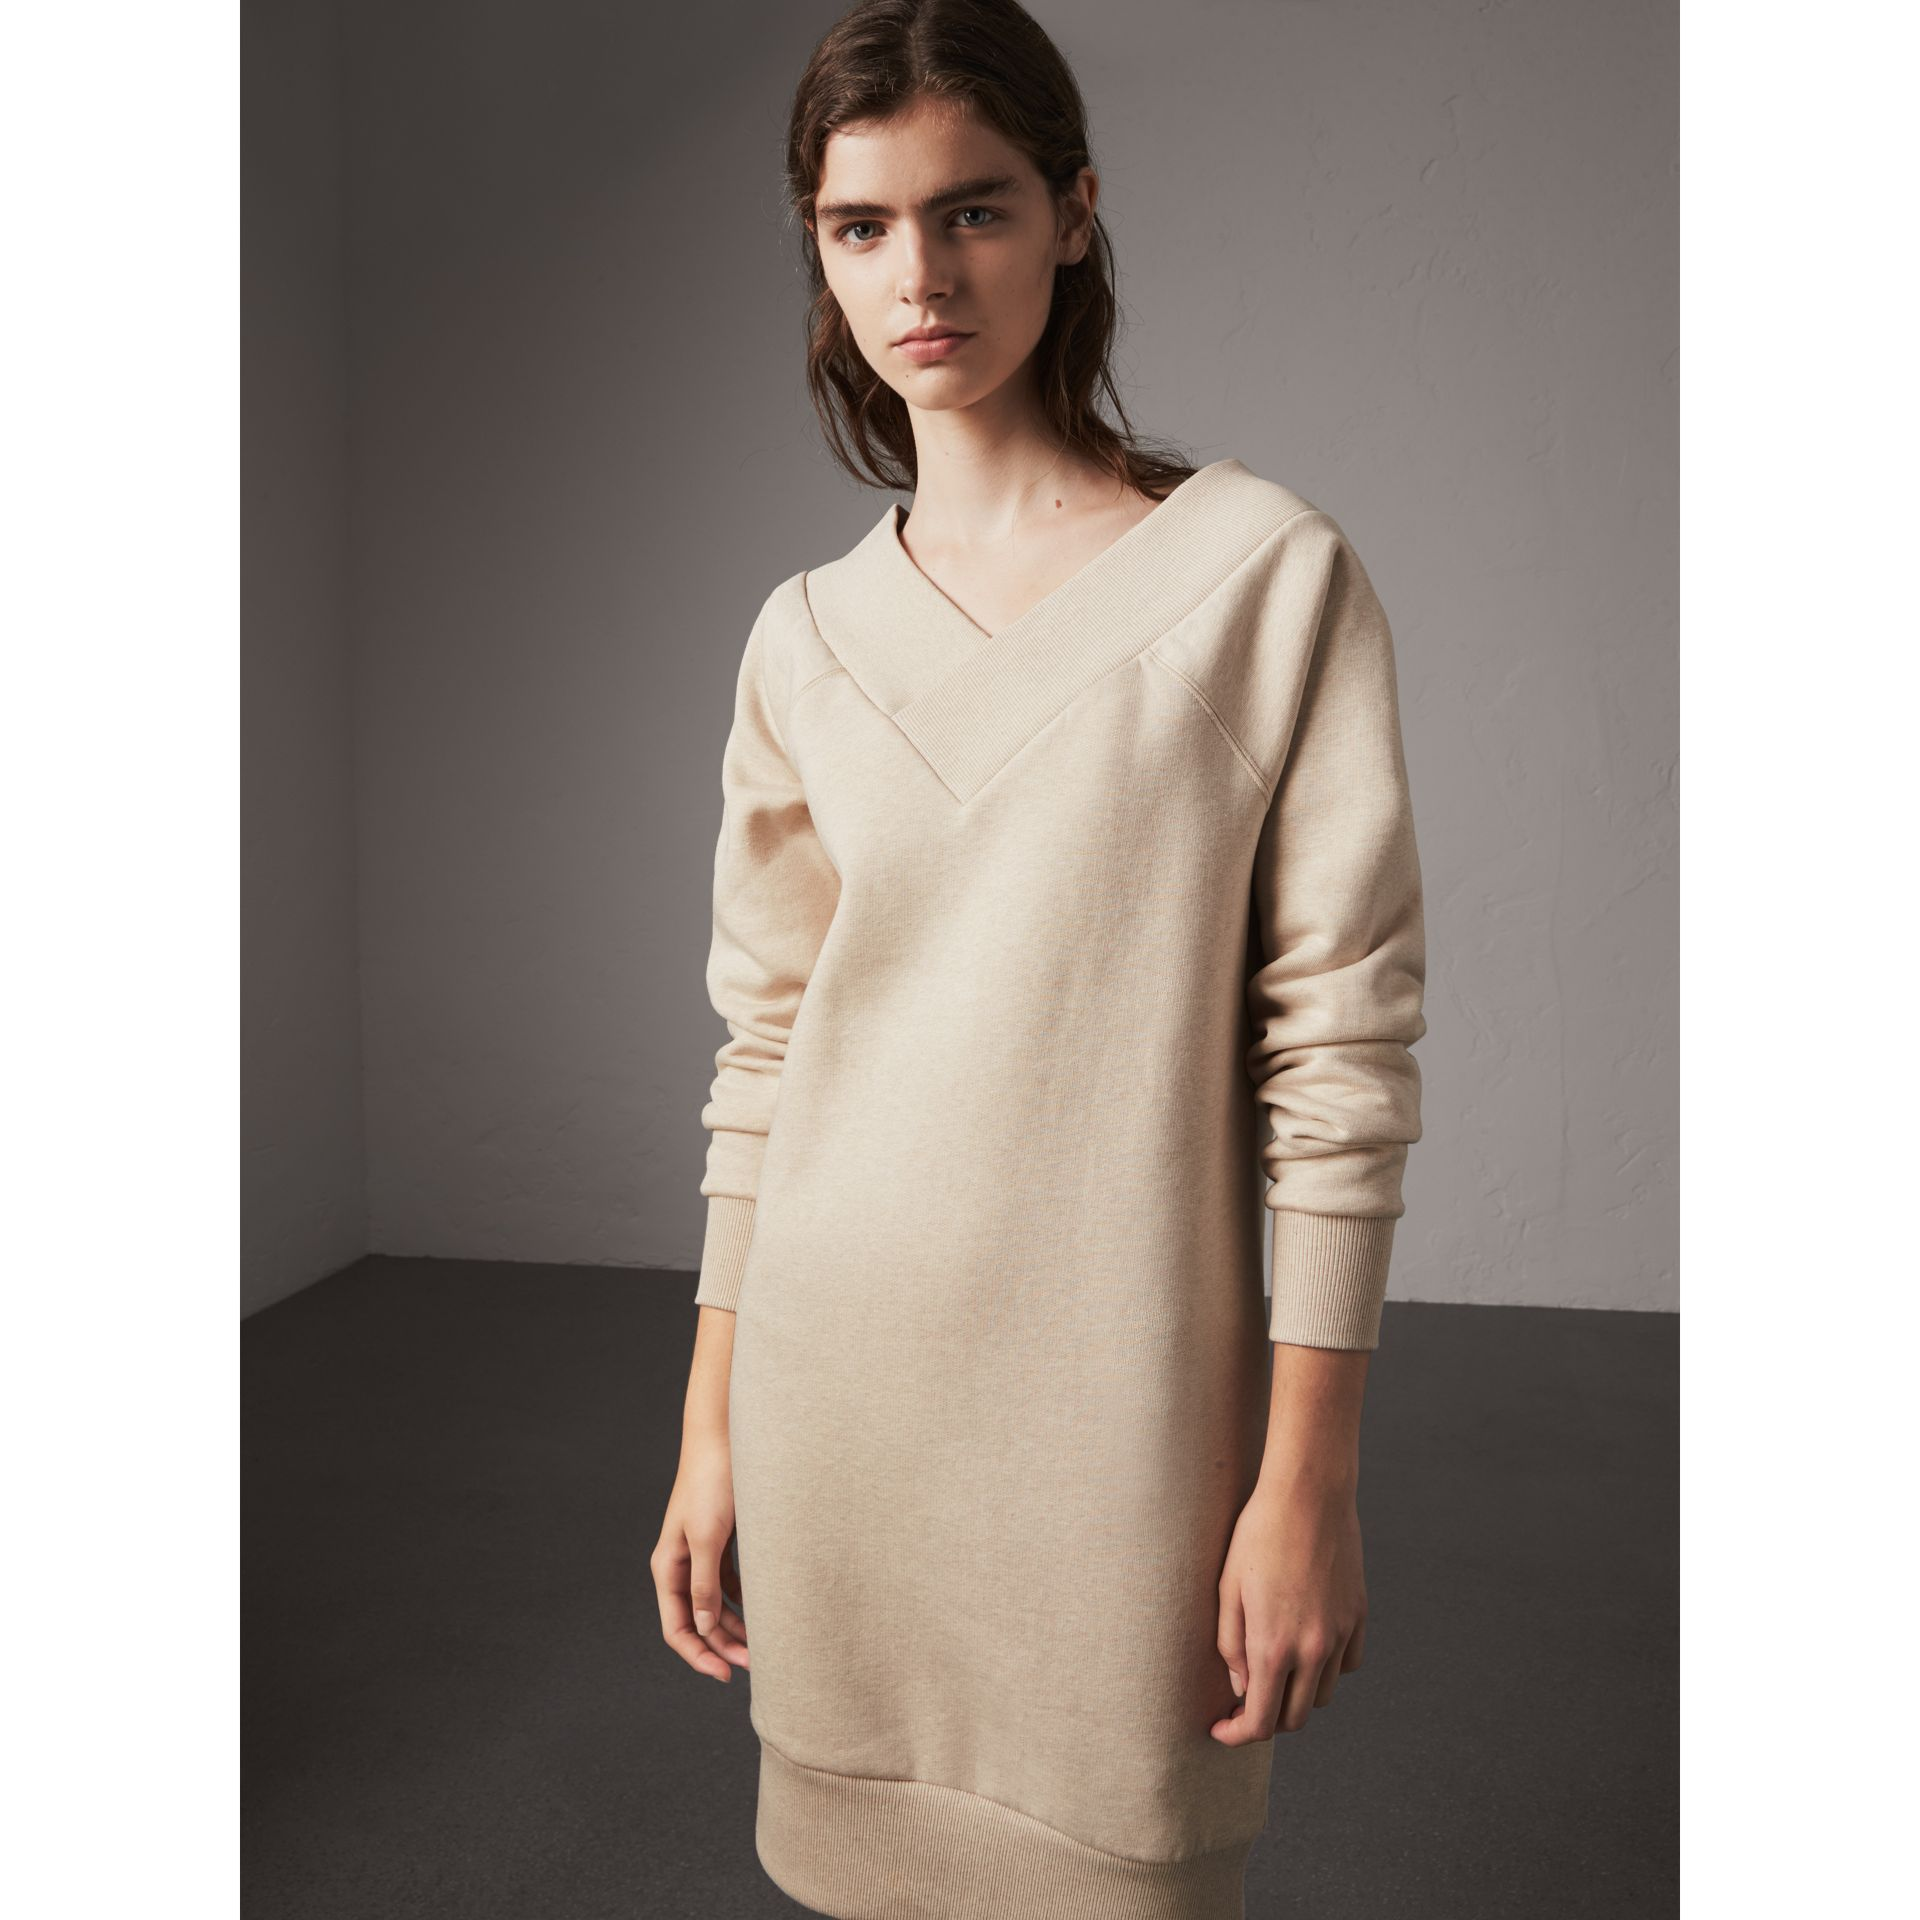 Cotton Blend V-neck Sweater Dress in Oatmeal Melange - Women | Burberry - gallery image 6